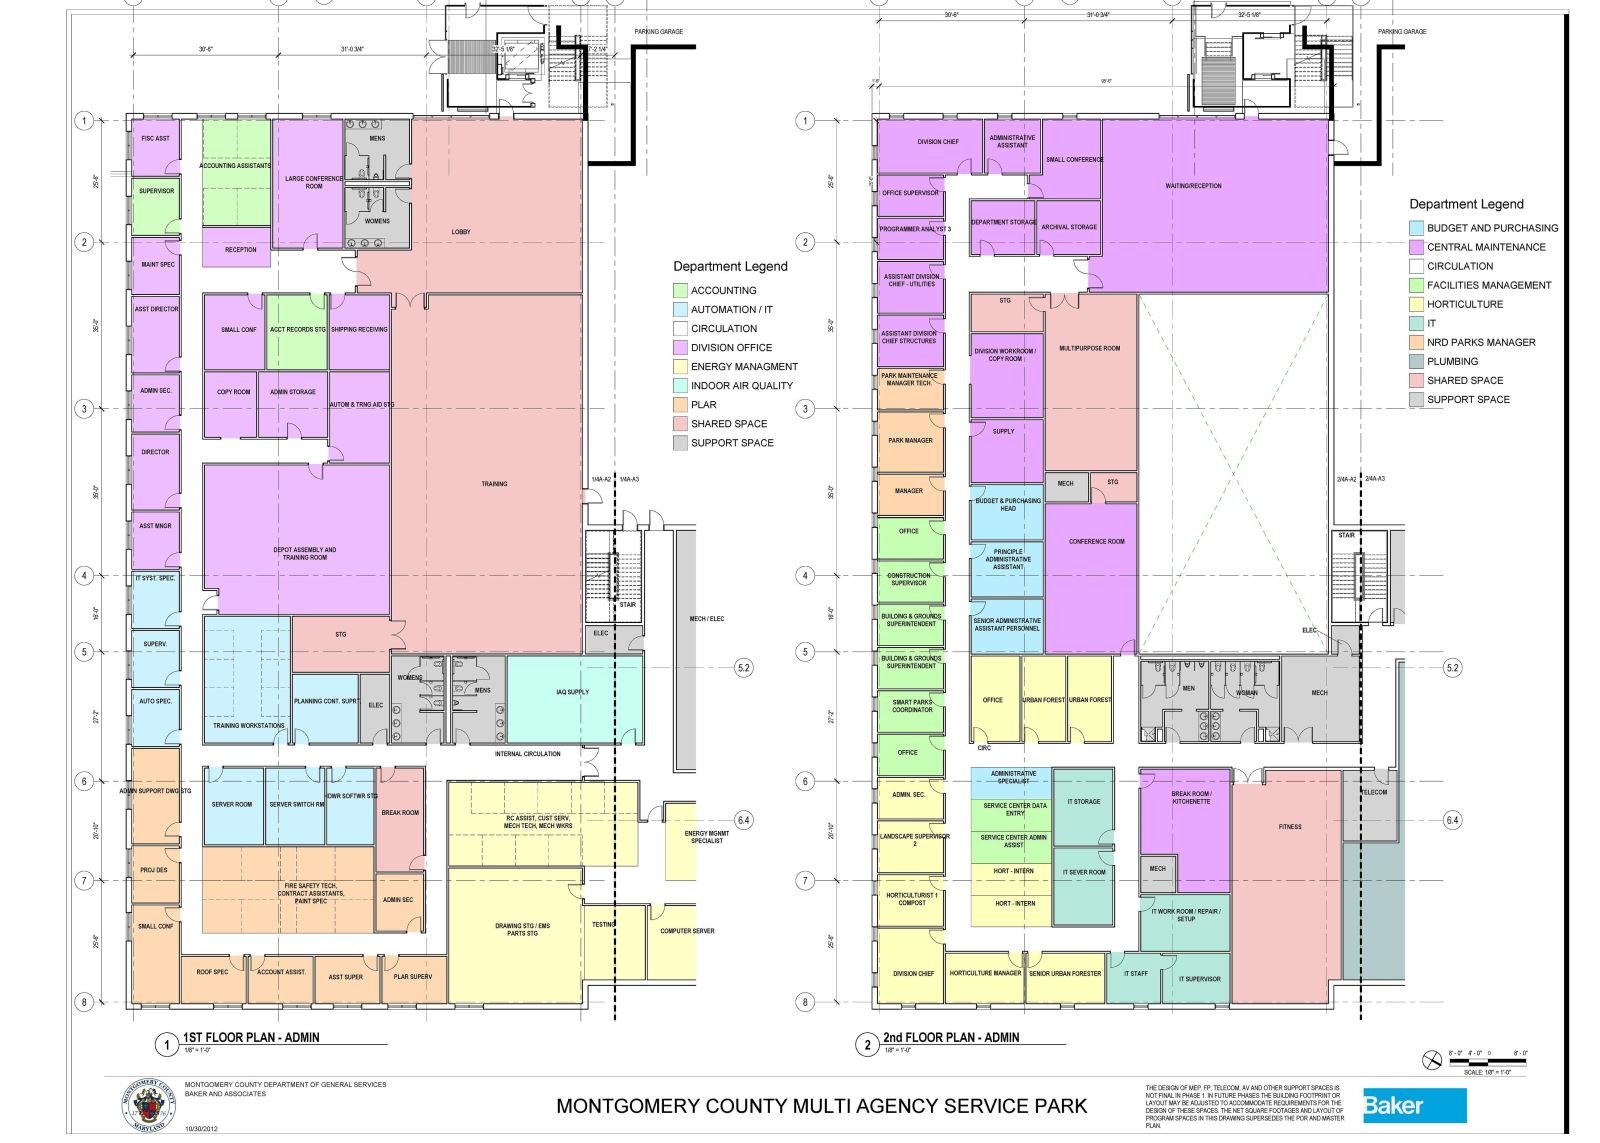 MASP & PSTA Project 4: MCPS and M-NCPPC Facilities Maintenance Depots - MNCPPC-DPM and MCPS-DM Main Building Floor Plans